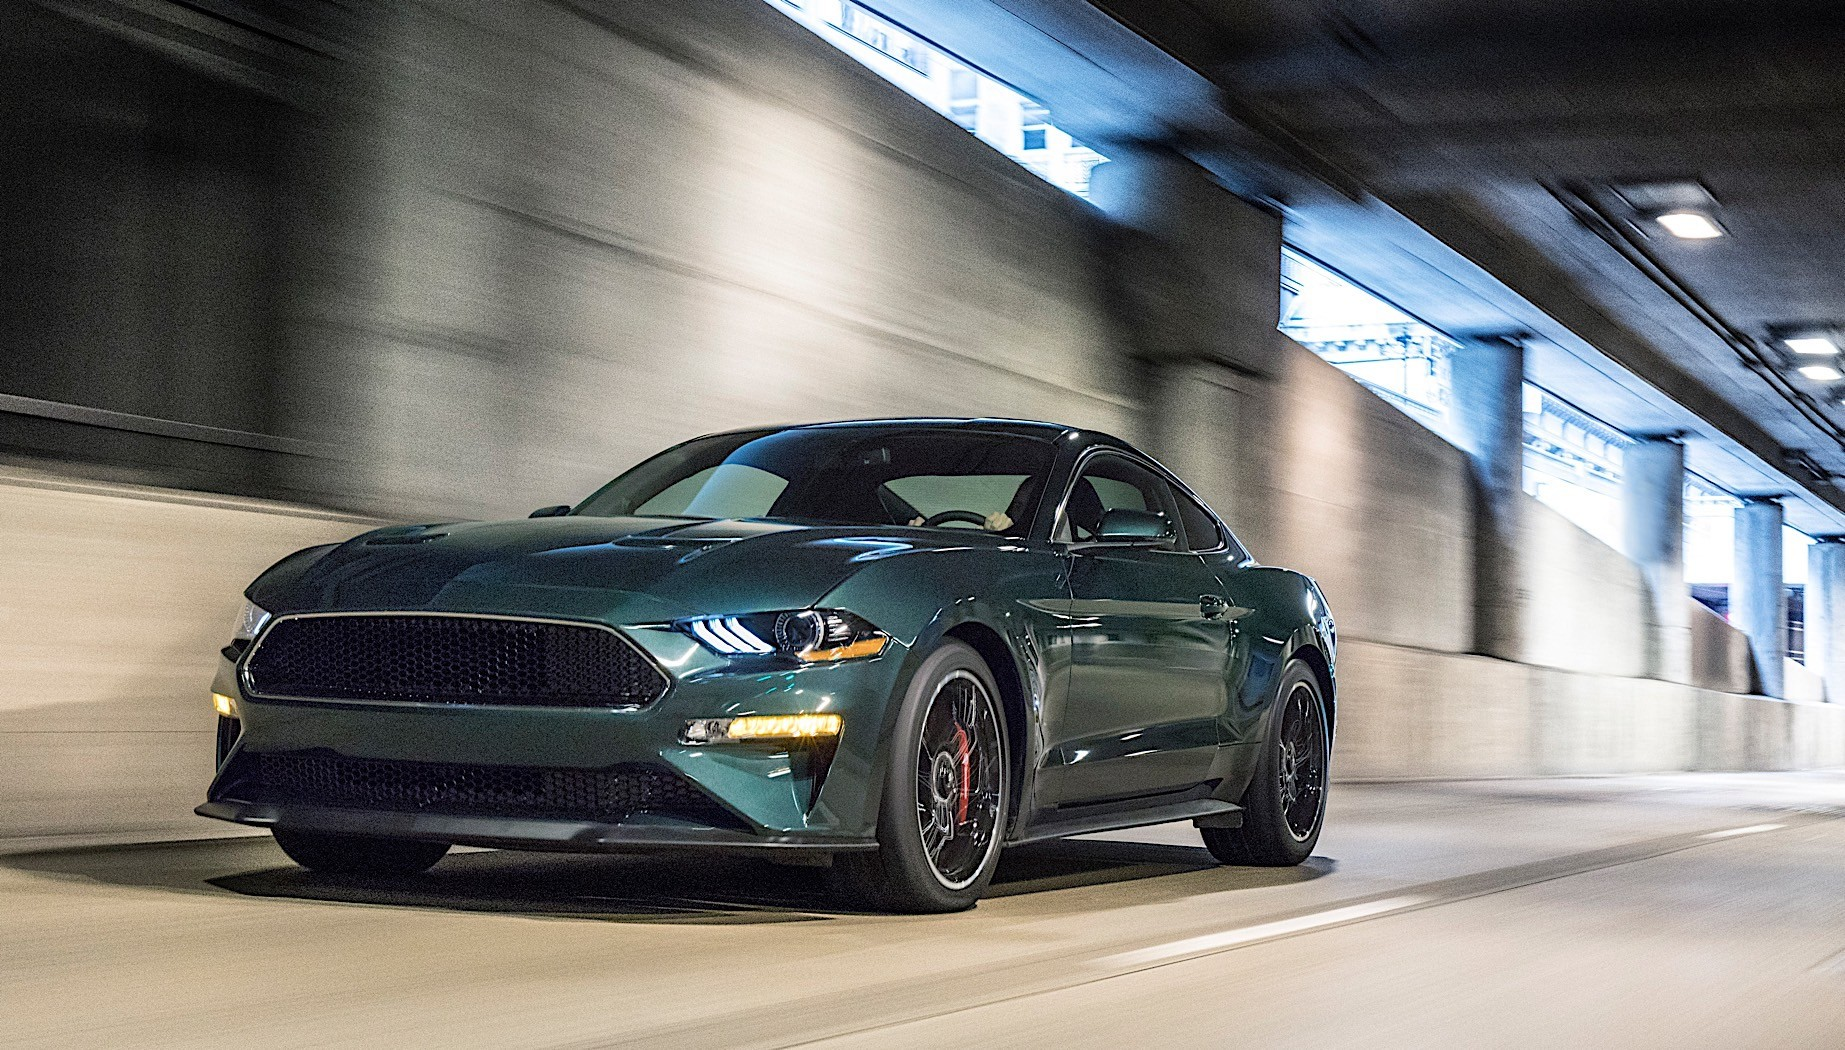 2019 Ford Mustang Sports Car The Bullitt Is Back >> Ford Mustang Bullitt Now Delivers 480 HP, Available for Order in the U.S. - autoevolution